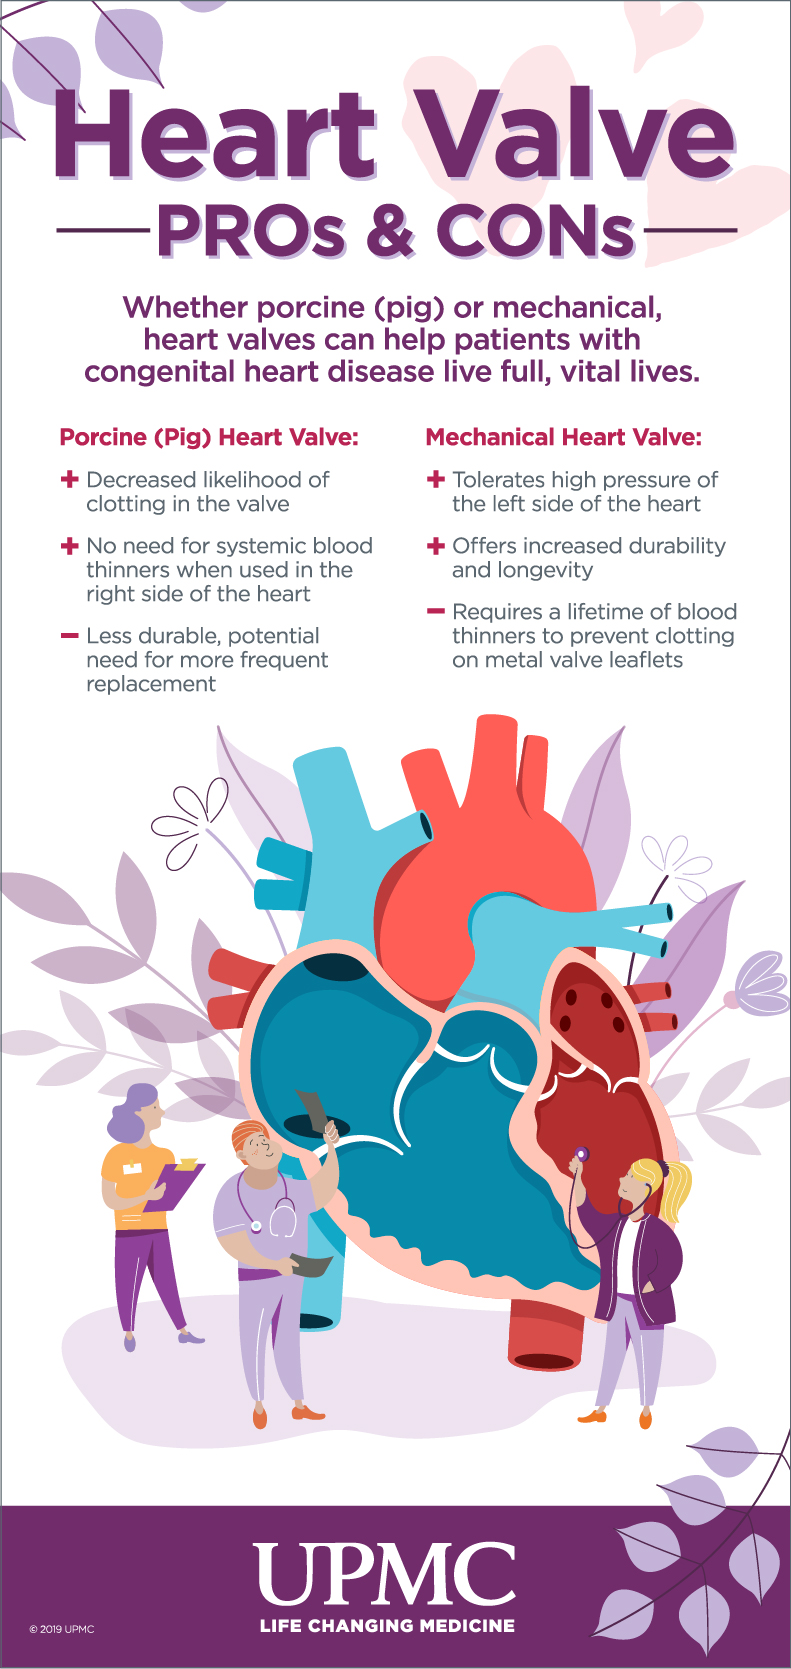 Learn more about heart valve transplant options.